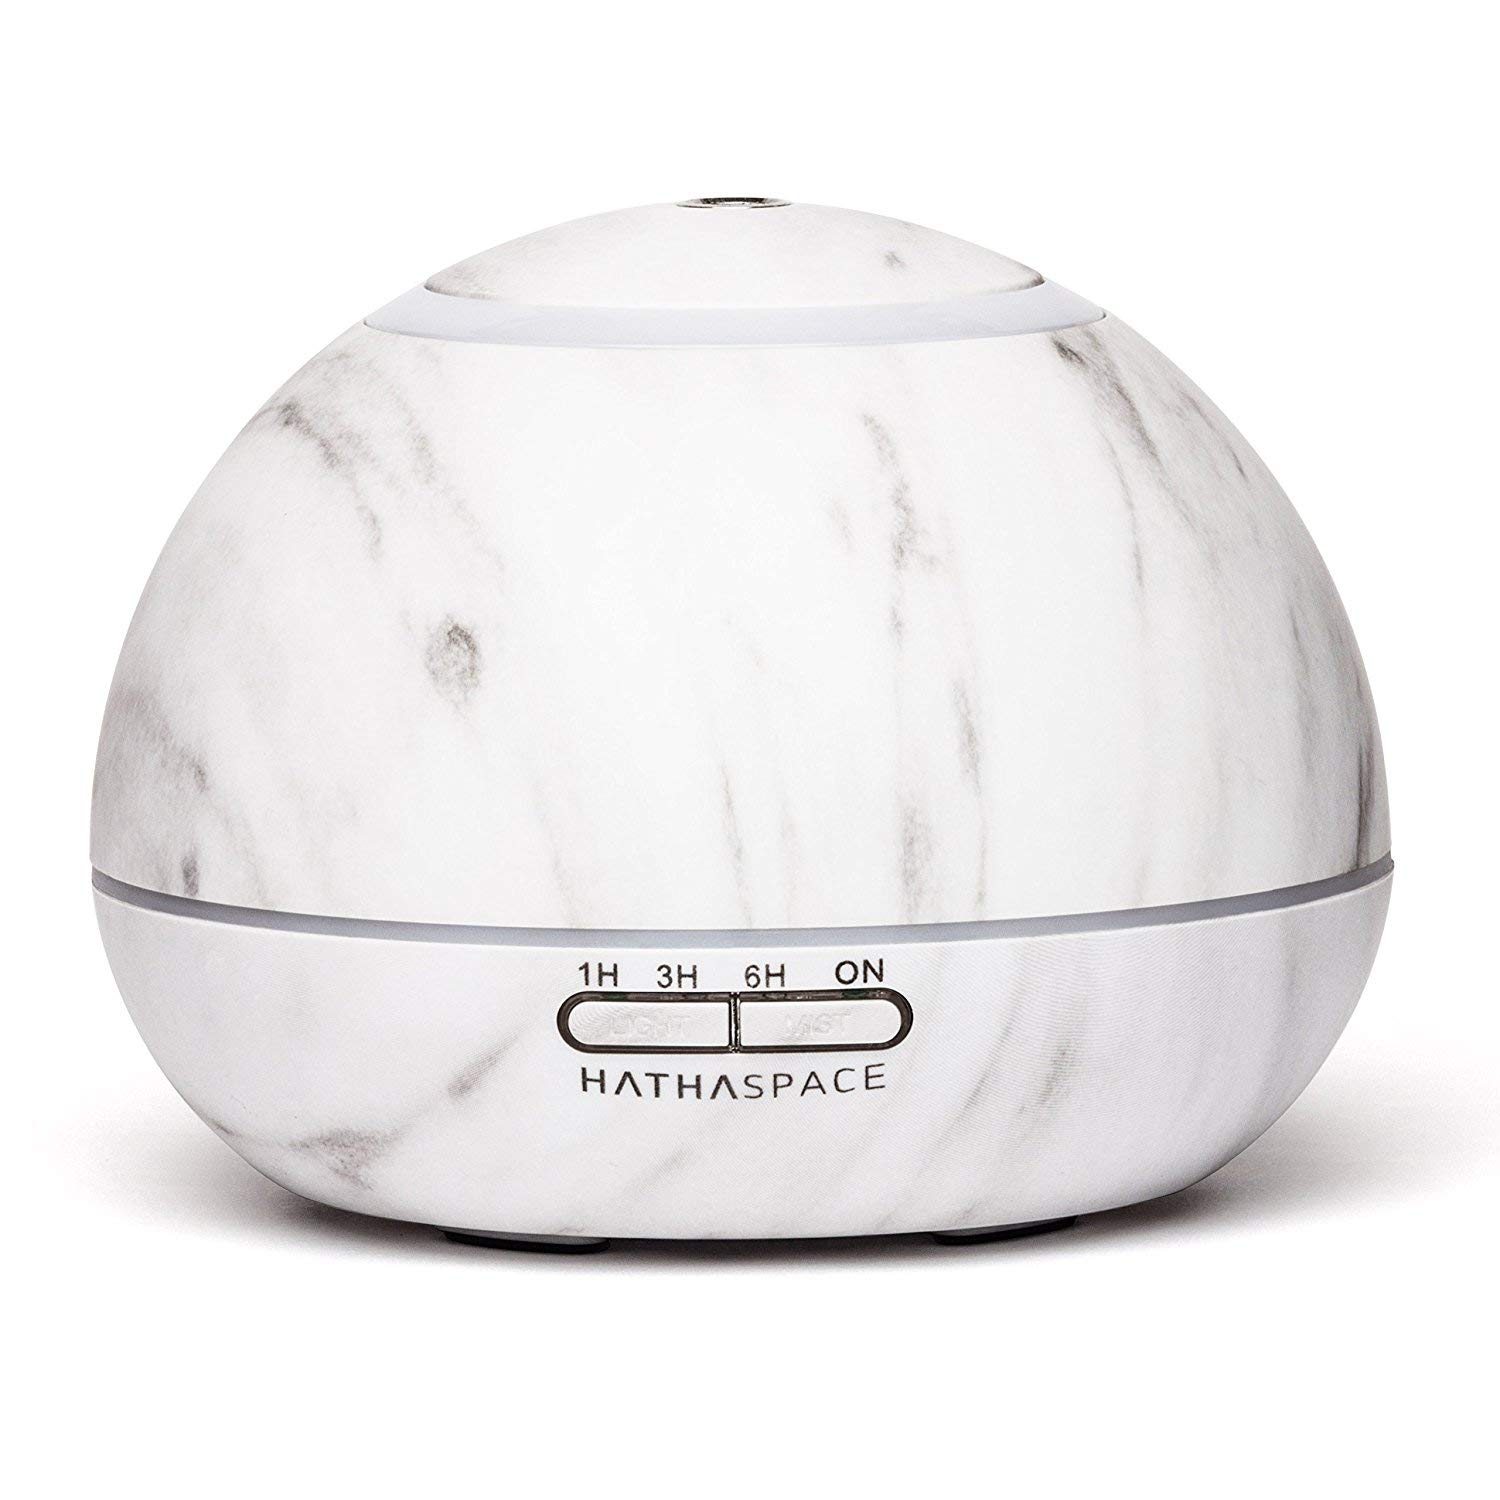 Hathaspace Marble Essential Oil Aroma Diffuser, 350ml Aromatherapy Fragrance Diffuser & Ultrasonic Cool Mist Room Humidifier, 18 Hour Capacity, BPA-Free, 7-Color Optional Ambient Light (White) by Hathaspace